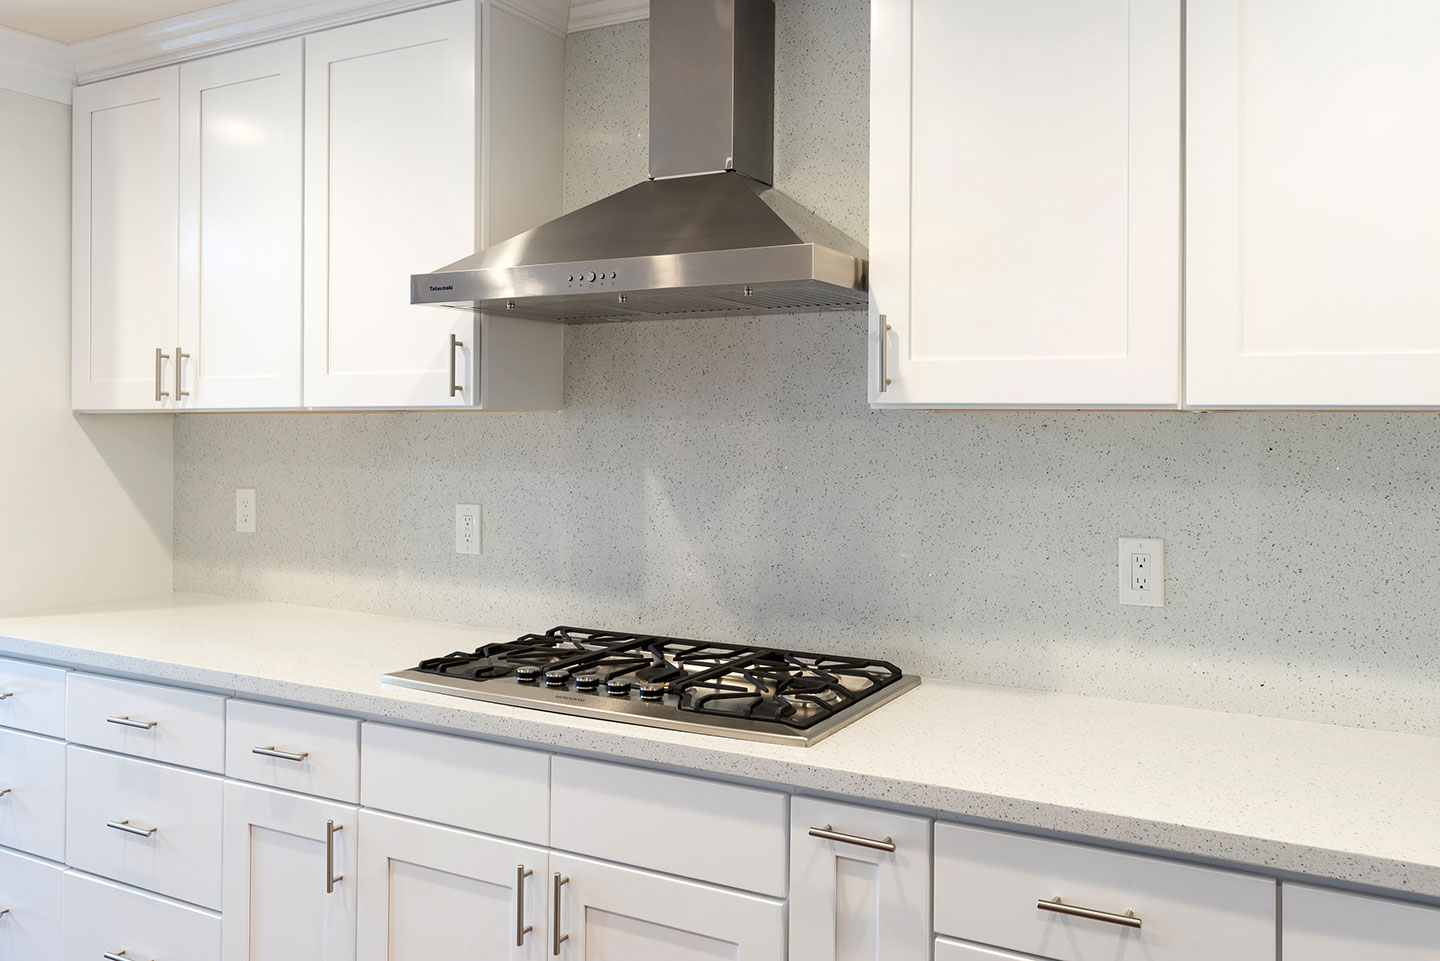 4 burner stove with stainless overhead exhaust